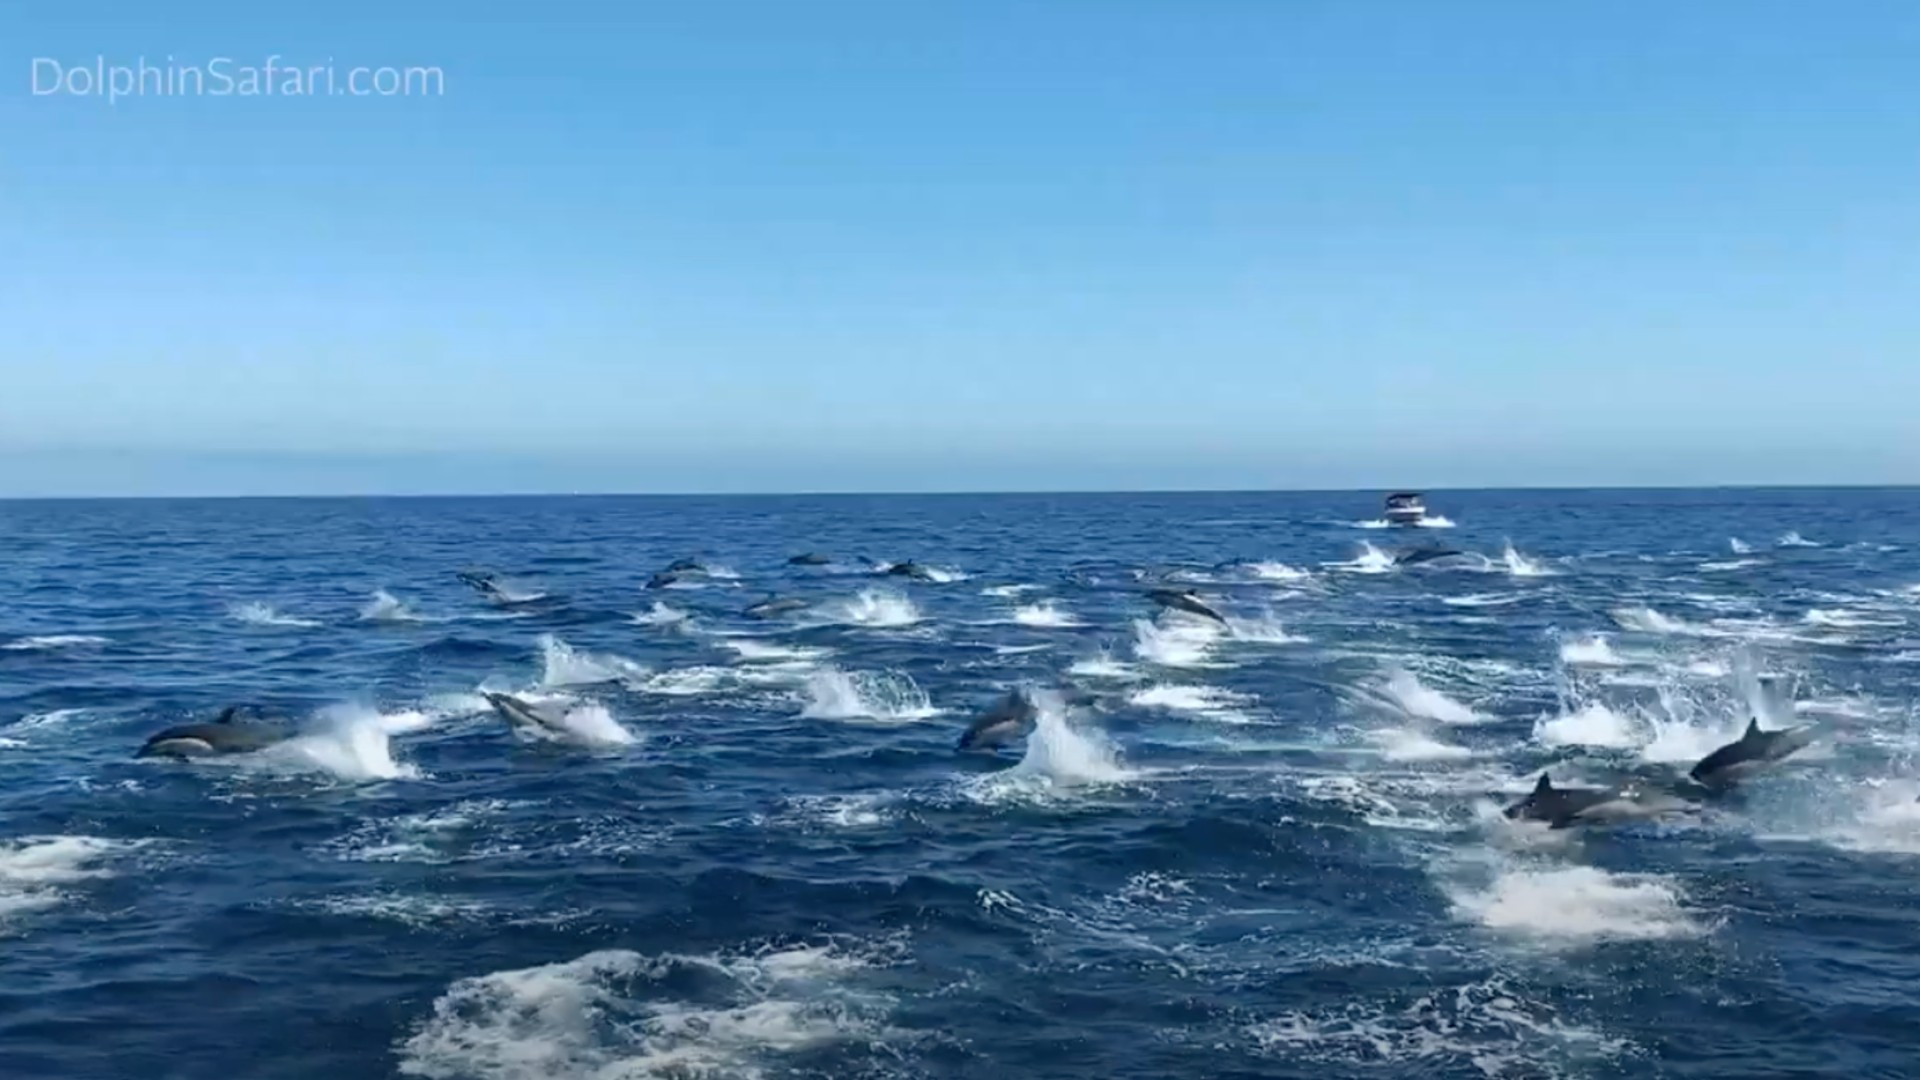 A dolphin stampede off the coast of Dana Point. (Buck Munson/DolphinSafari.com)